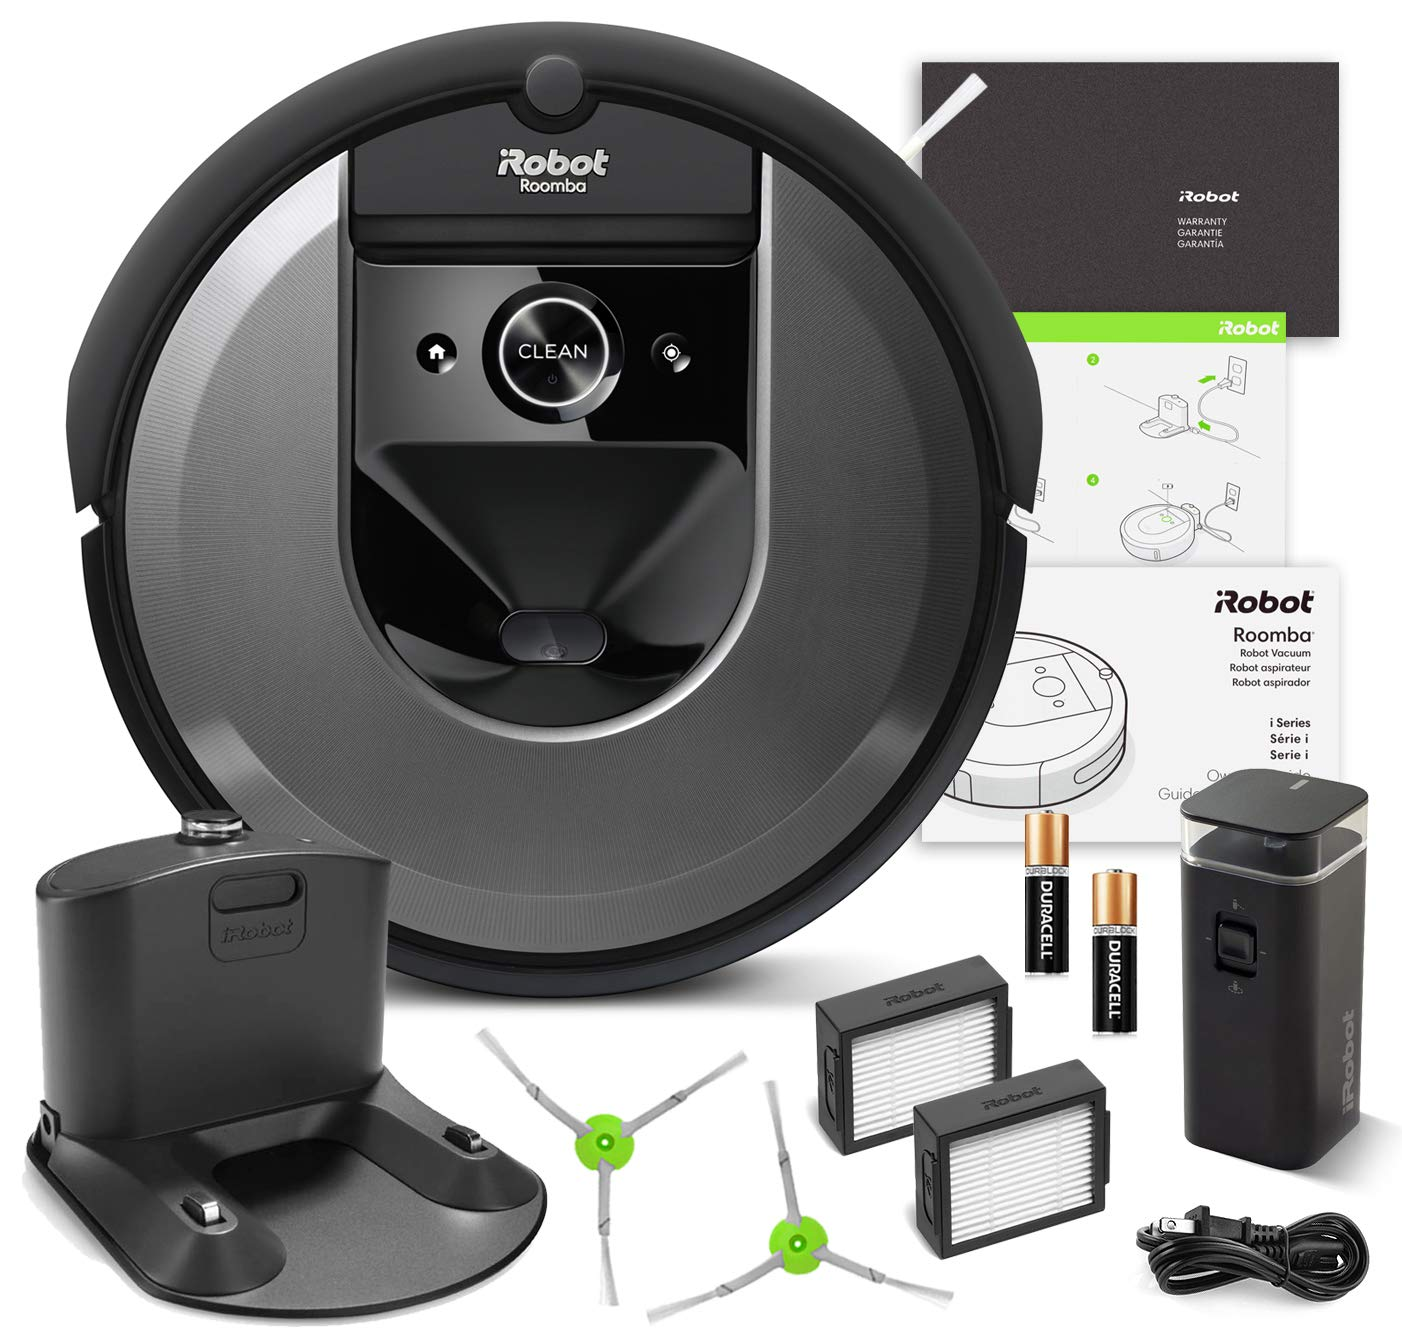 Amazon.com: iRobot Roomba i7 Robotic Vacuum Cleaner Wi-Fi Connectivity + Manufacturers Warranty + Extra Sidebrush Extra Filter Bundle: Camera & Photo